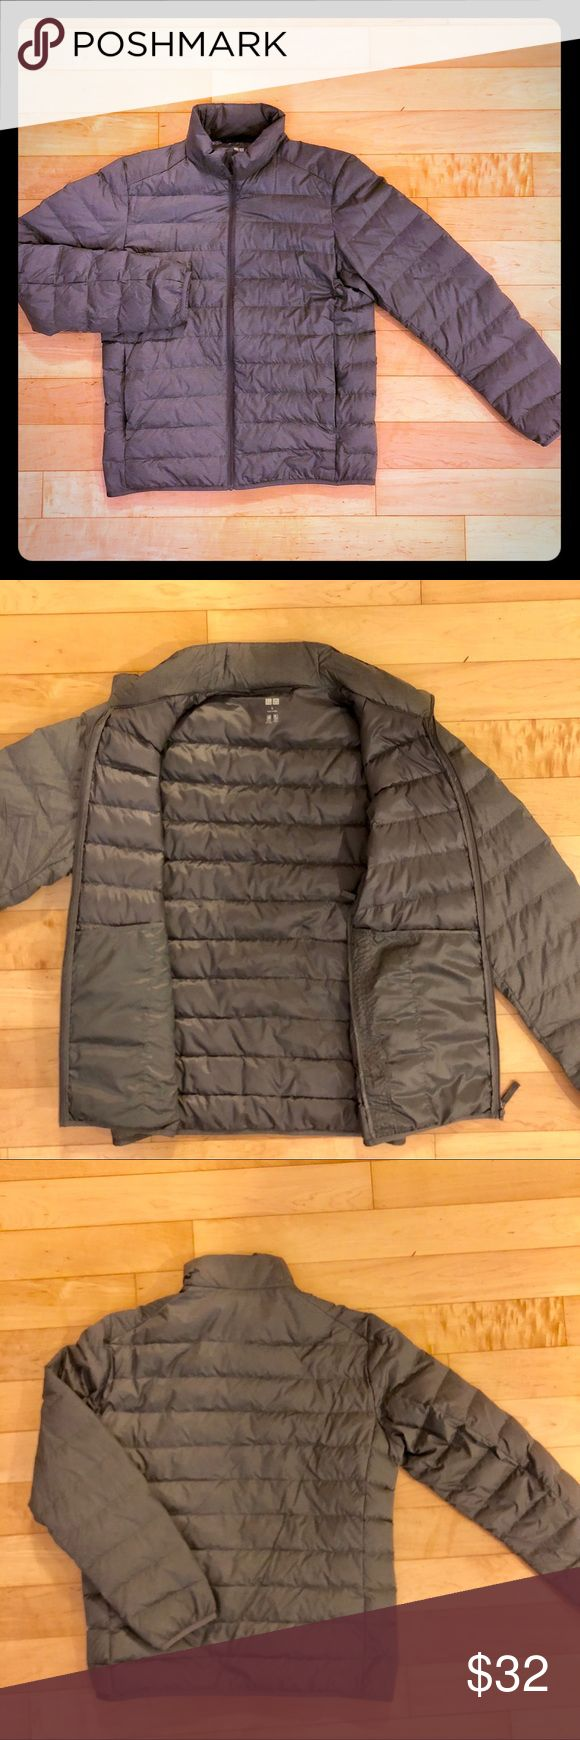 Uniqlo Ultra Light Down Jackef Uniqlo's super light and comfortable Ultra Light Down keeps you very warm. It's versatile, has two additional inner pockets, in Like-New condition. Uniqlo Jackets & Coats Lightweight & Shirt Jackets